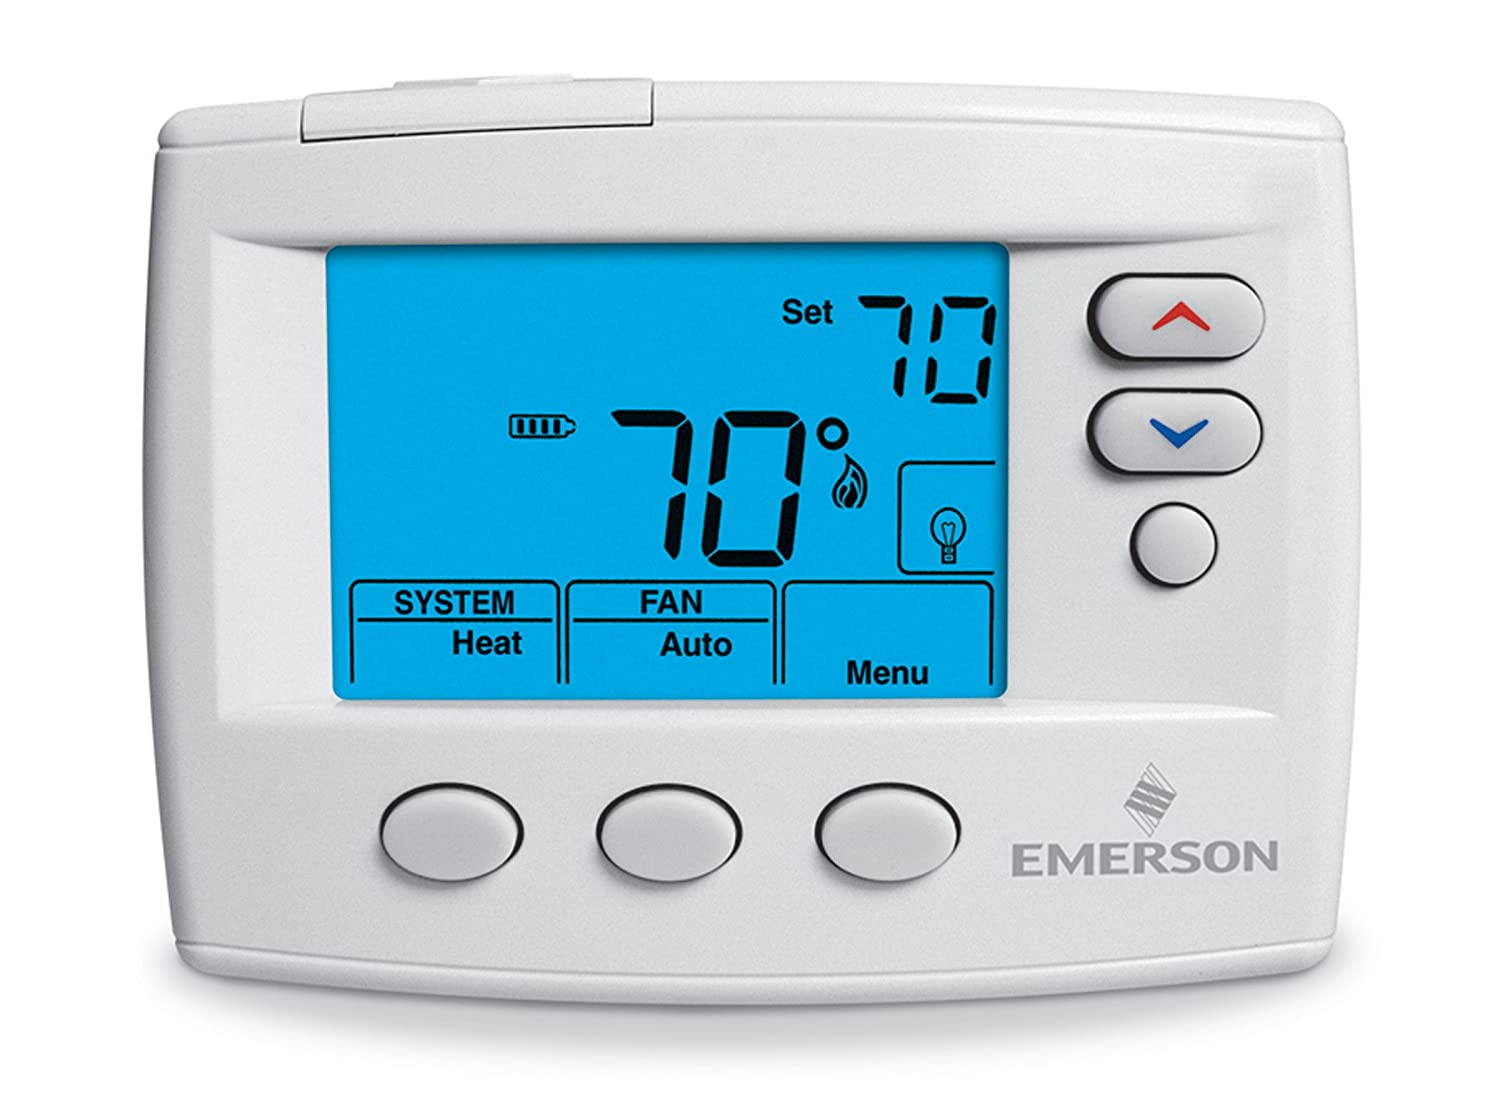 81w%2BvF7knGL._SL1500_ emerson 1f86 0471 single stage, non programmable thermostat, 24 Honeywell Thermostat Wiring Diagram at gsmx.co